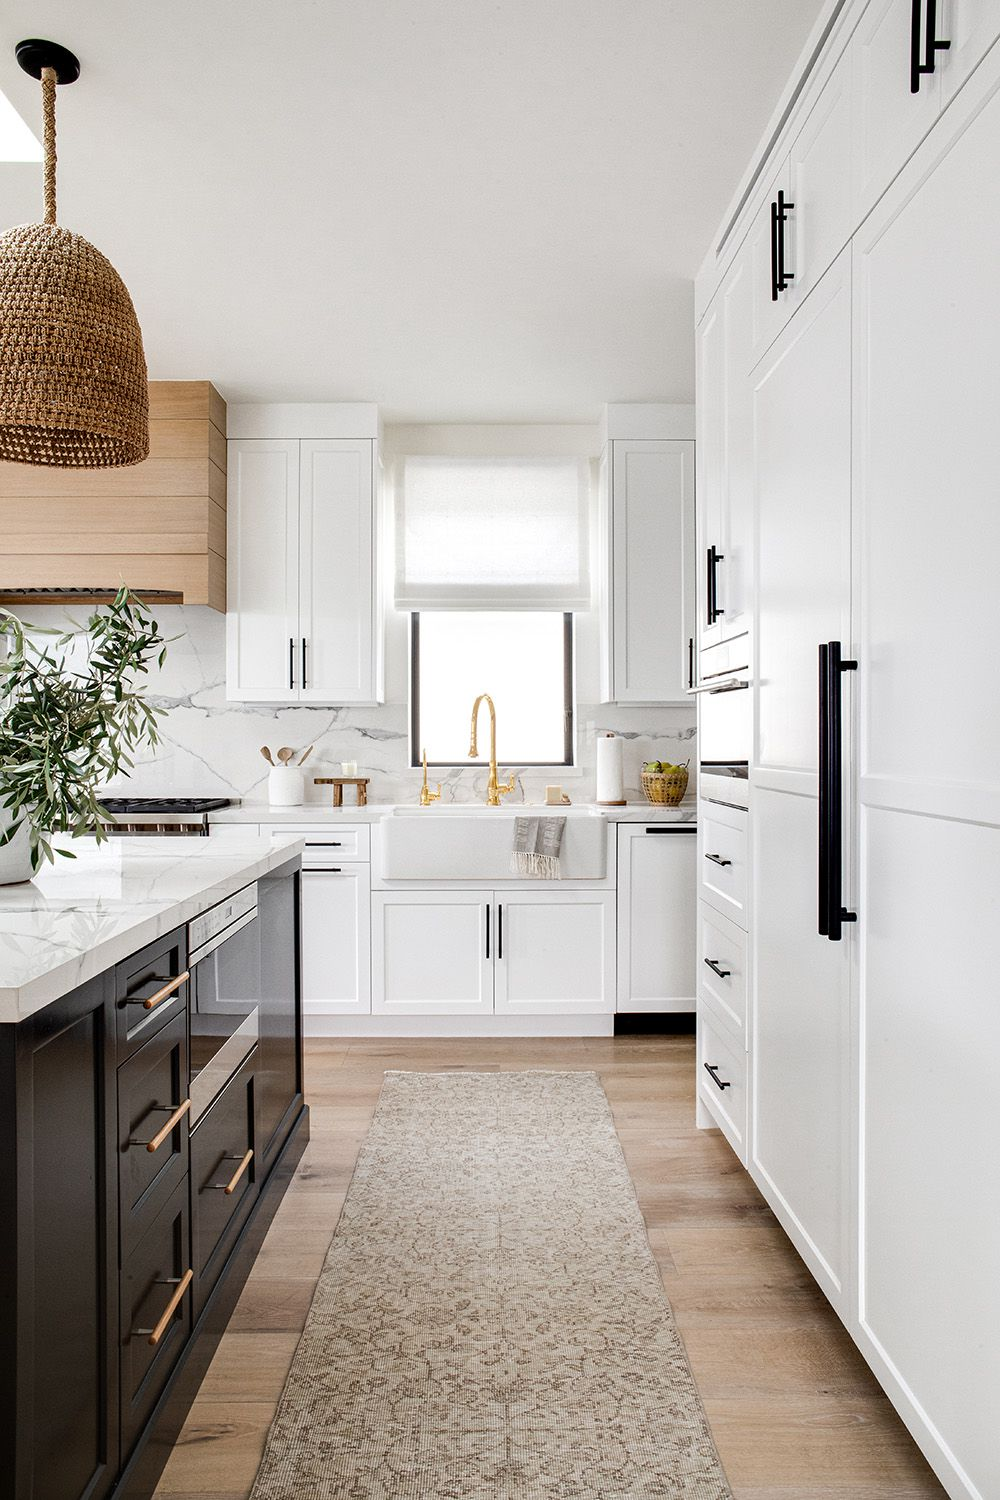 This Kitchen Cabinet Trend Is Never Going Out of Style